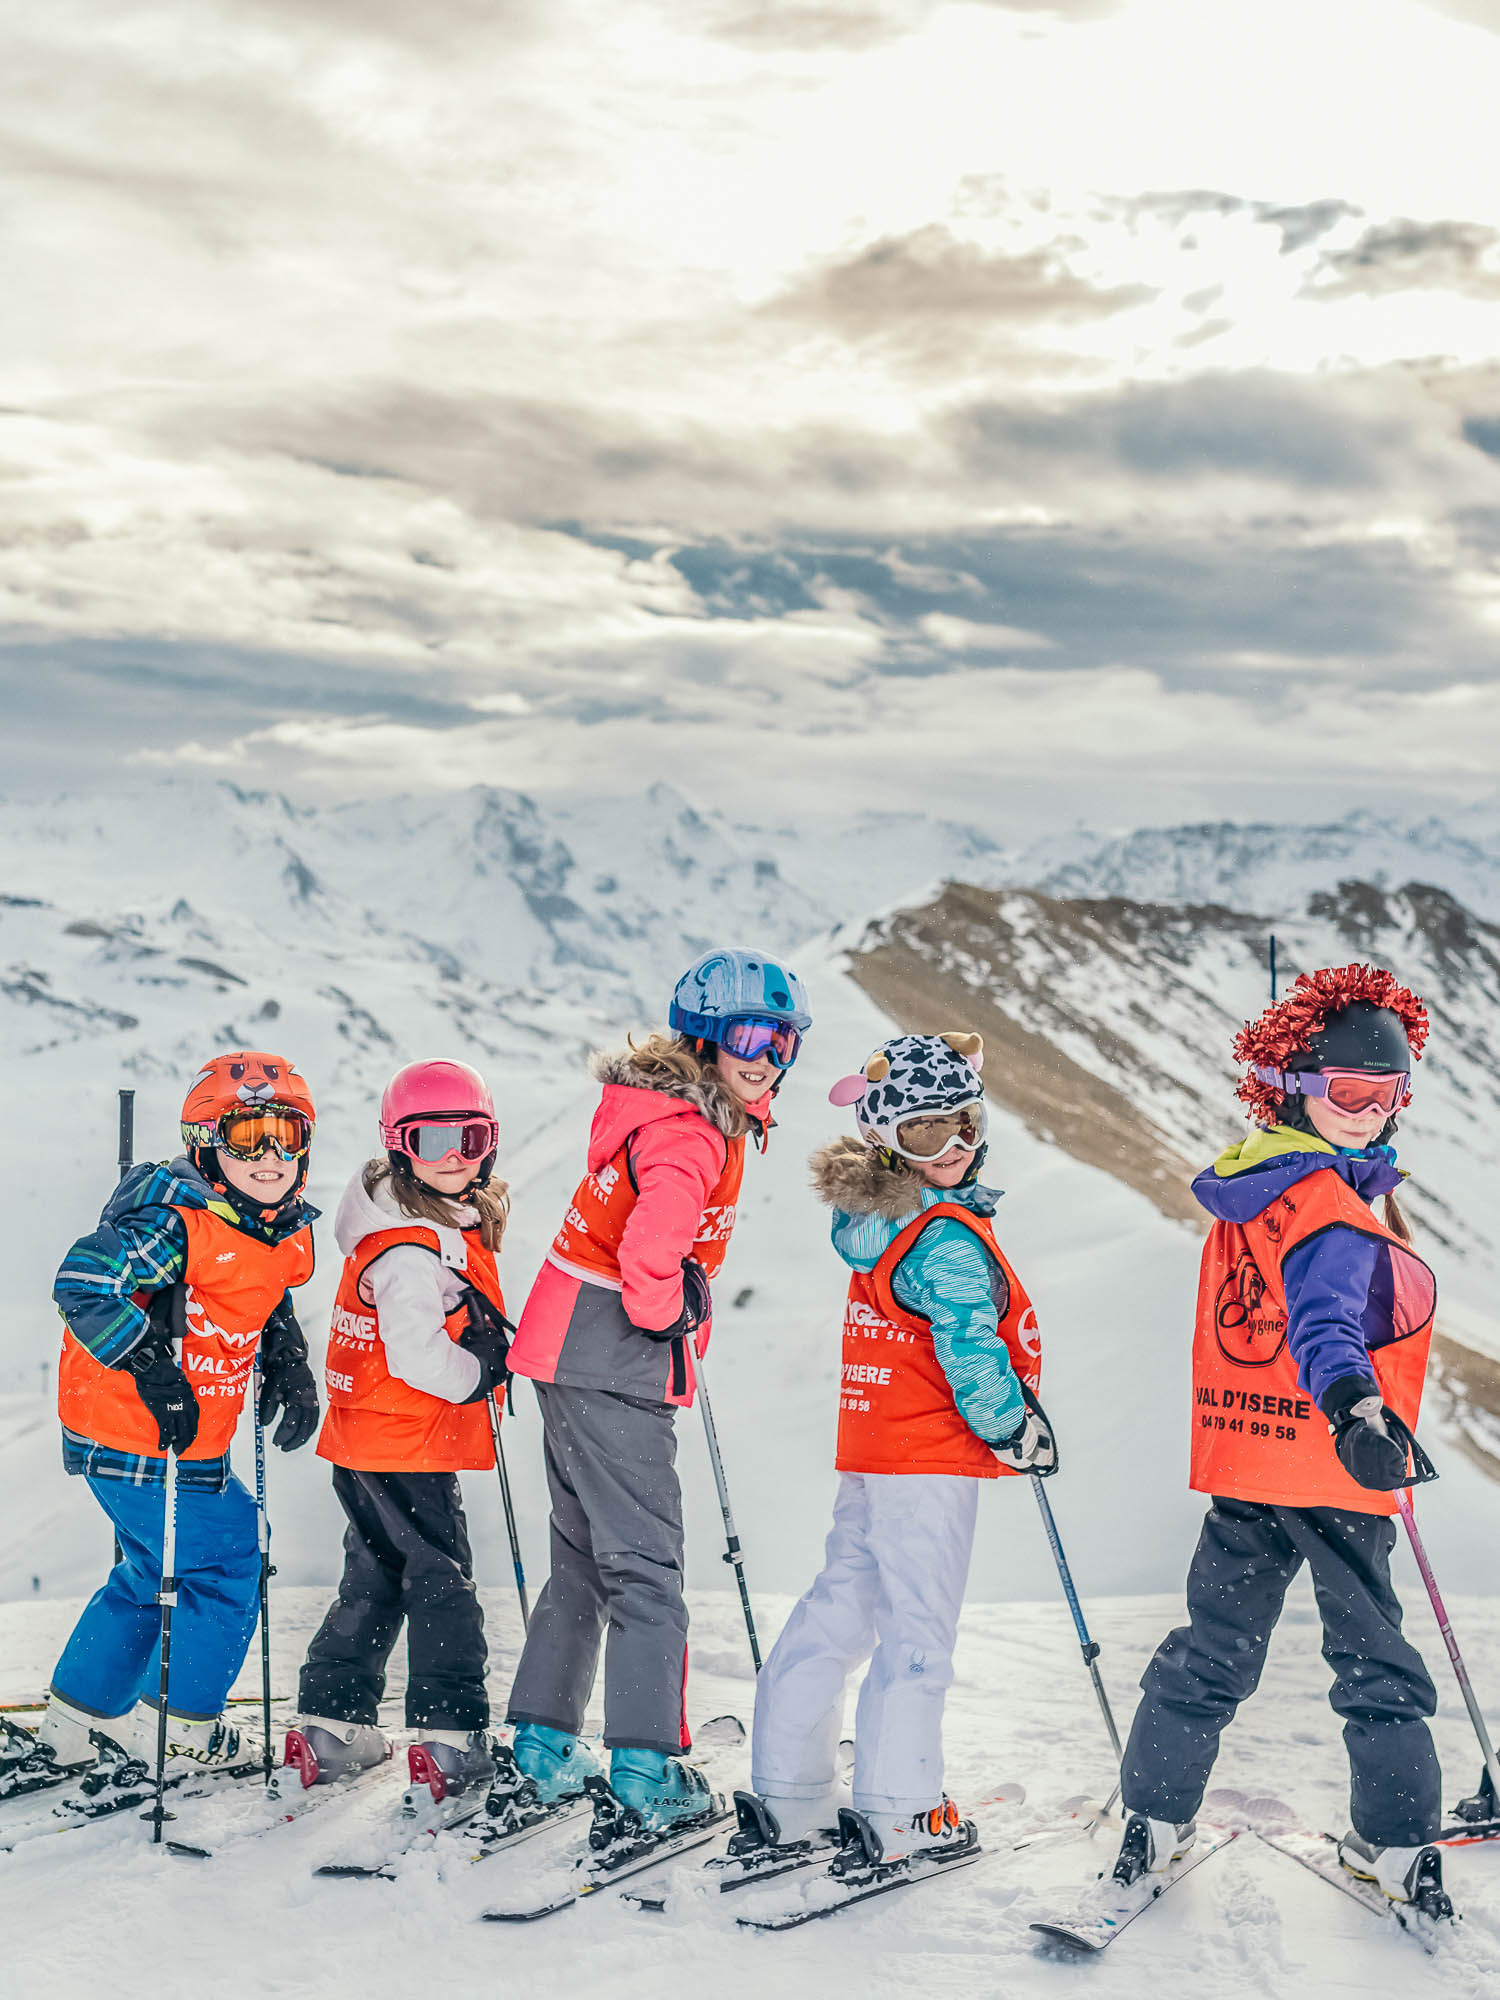 Oxygène Ski & Snowboard School – Children's Group Ski Lesson